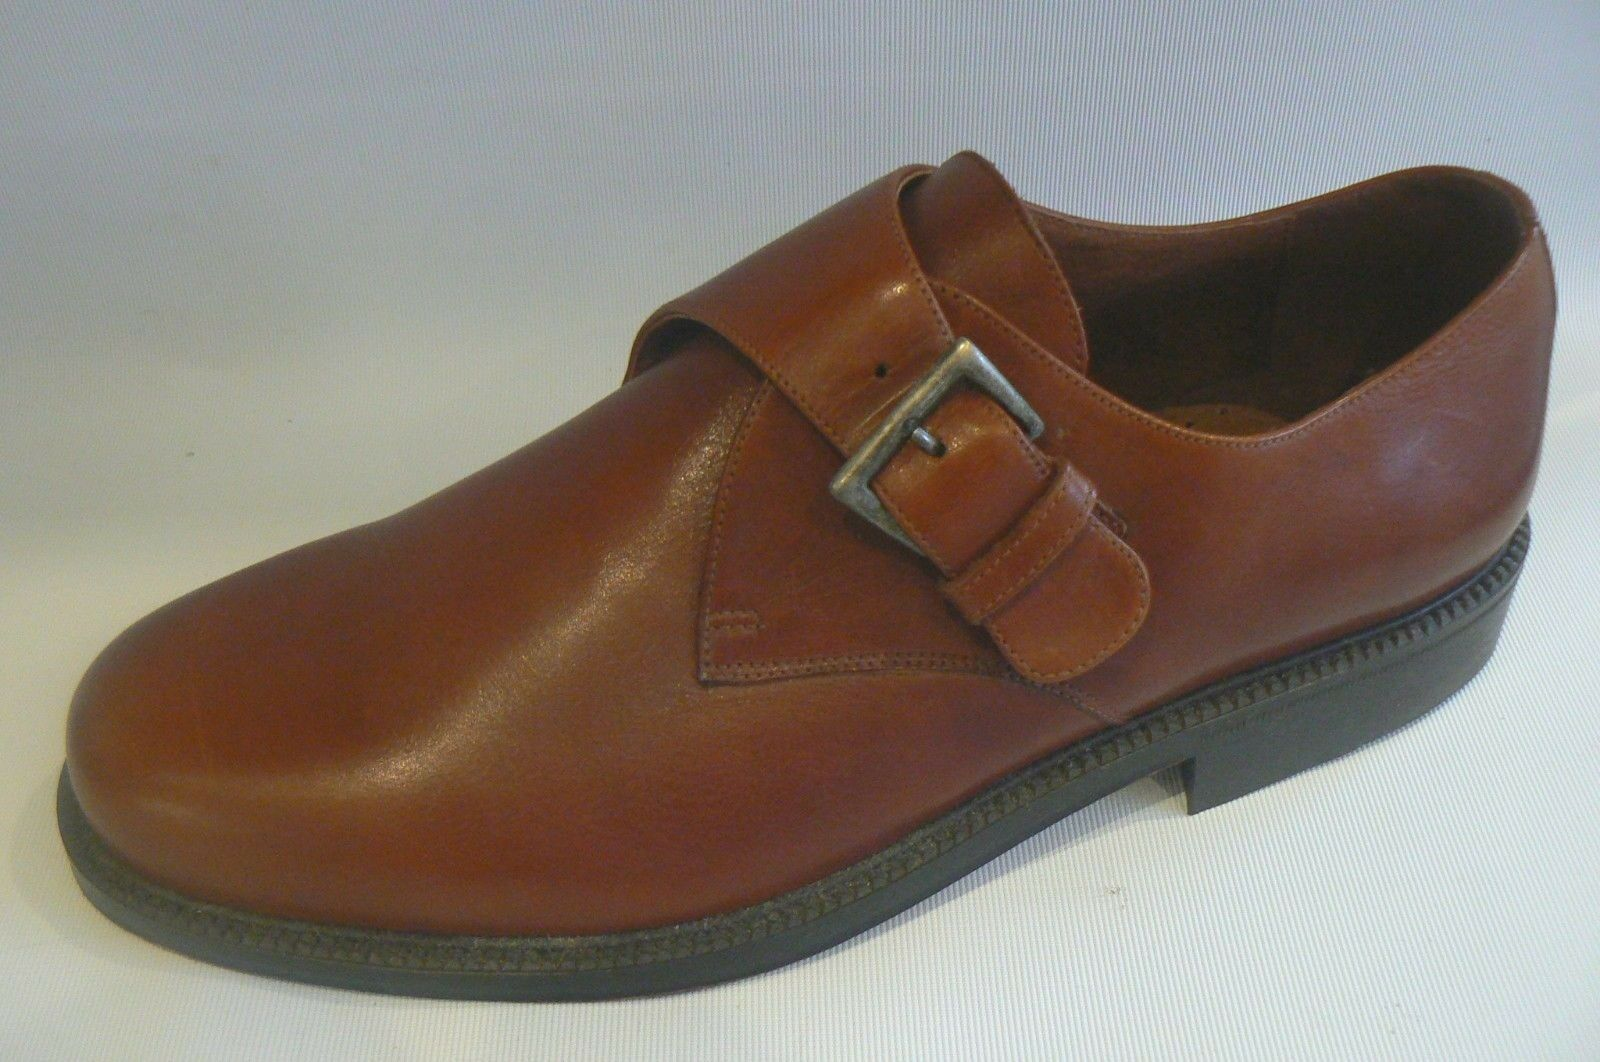 CALZADOS D PAQUIS Handmade Tan Cuir Moine Chaussures Taille 11 46 nouveau without tags